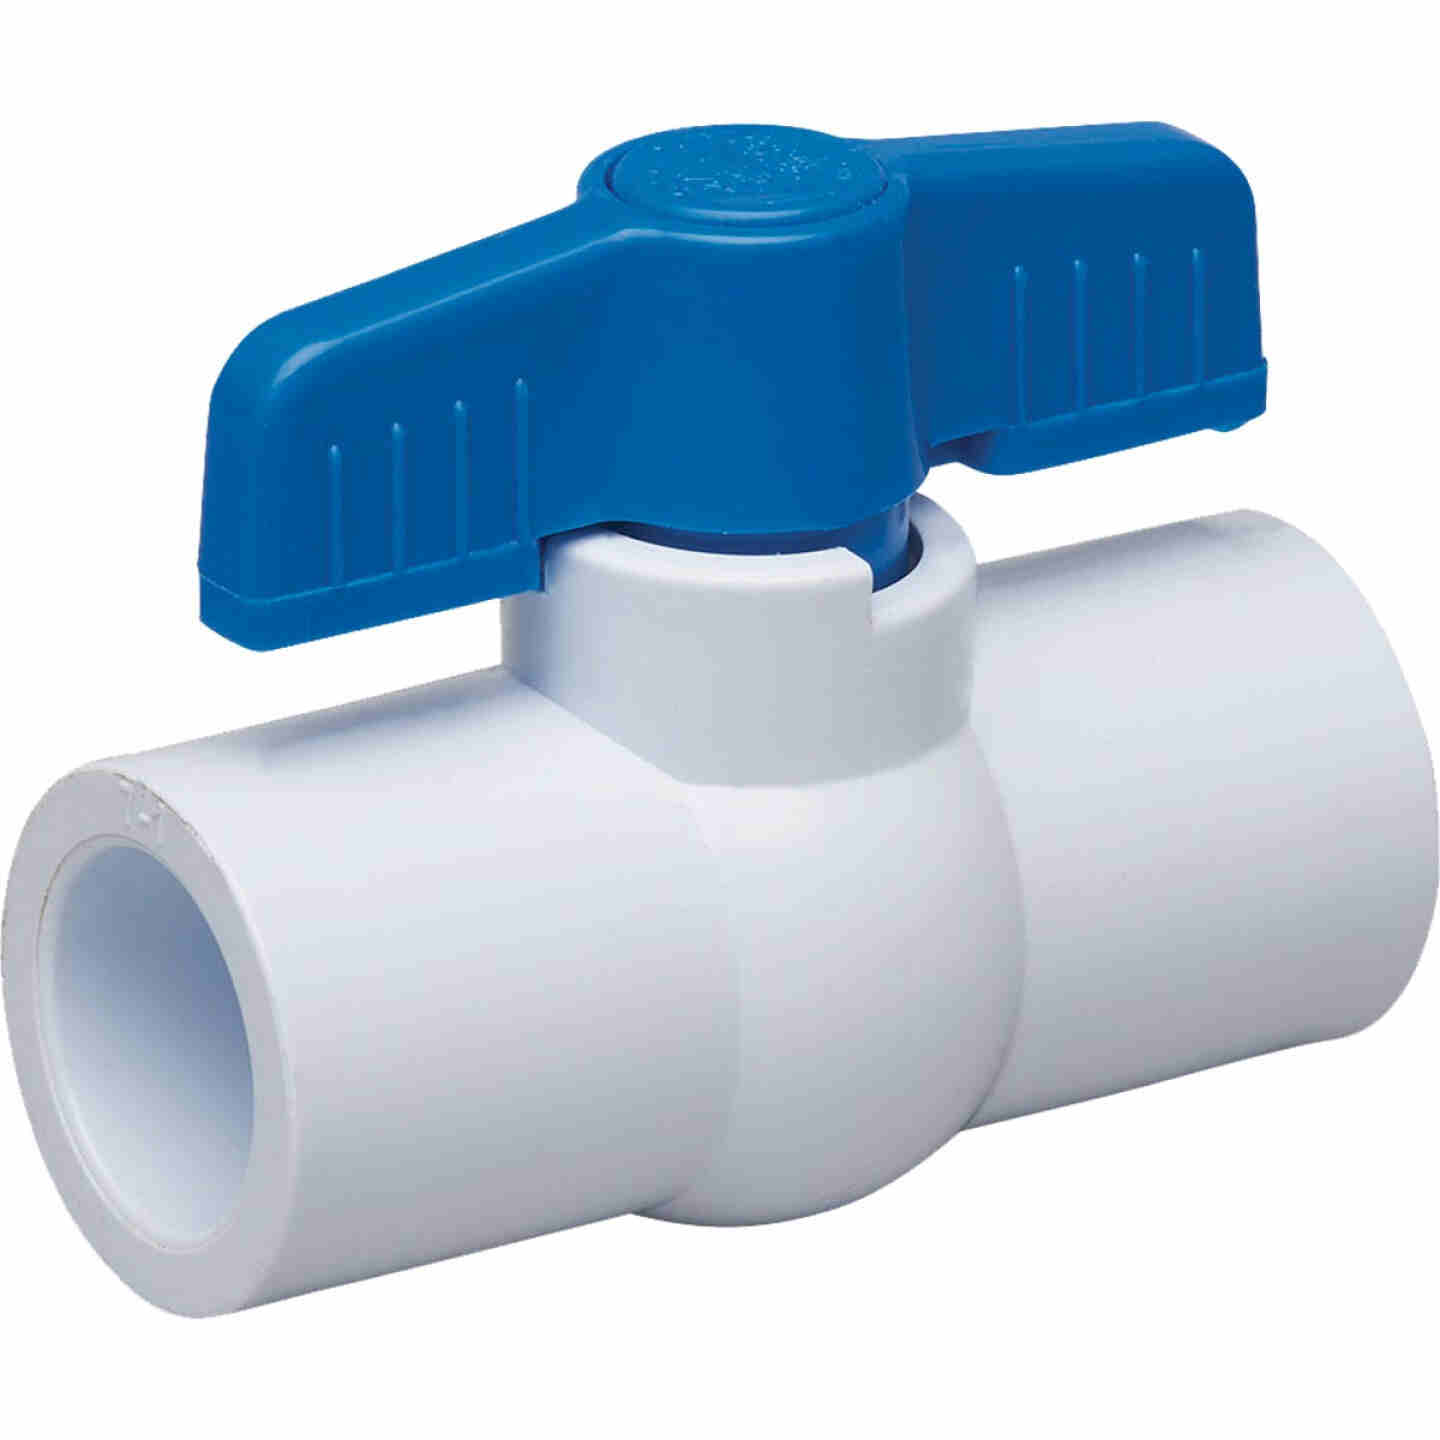 Proline 1-1/2 In. Solvent x 1-1/2 In. Solvent PVC Schedule 40 Quarter Turn Ball Valve, Non-NSF Image 1